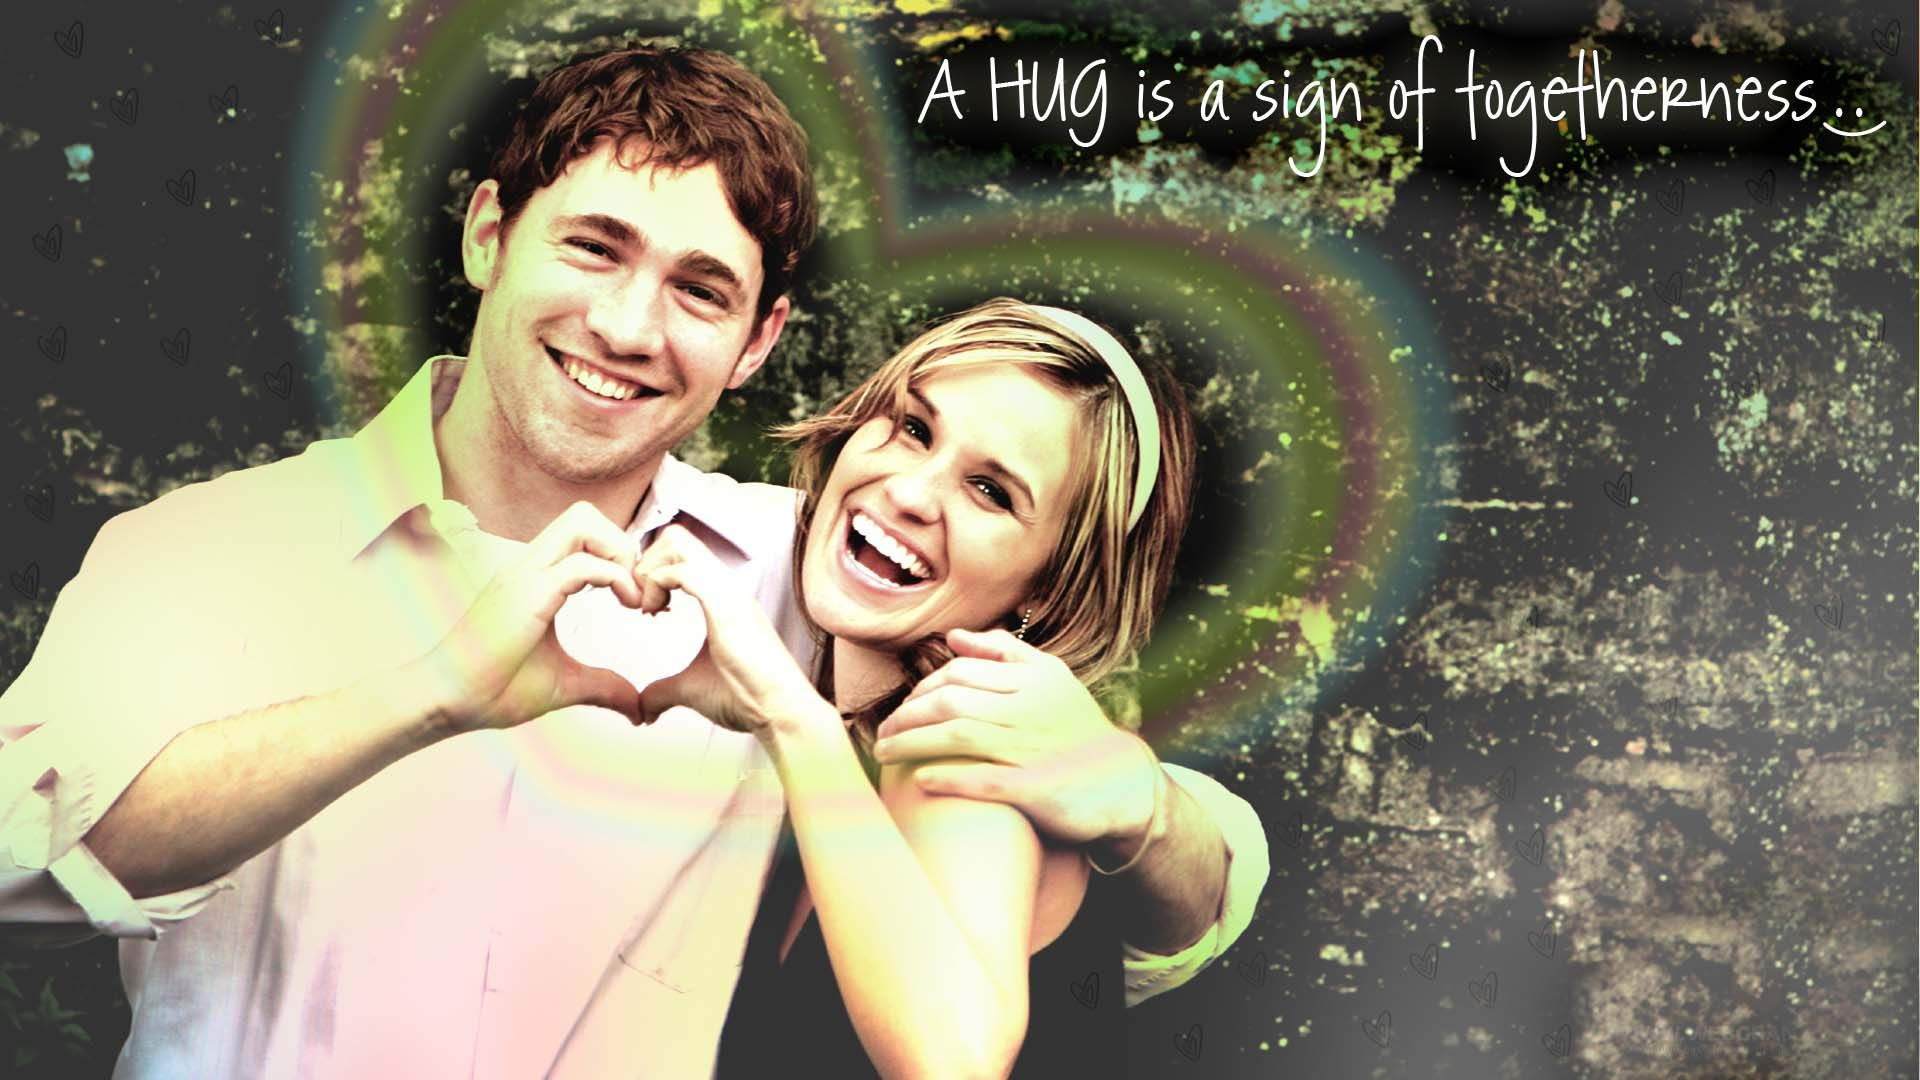 Cute Couple Hug Wallpaper For Mobile Source Love In Hd Floweryred2 Com